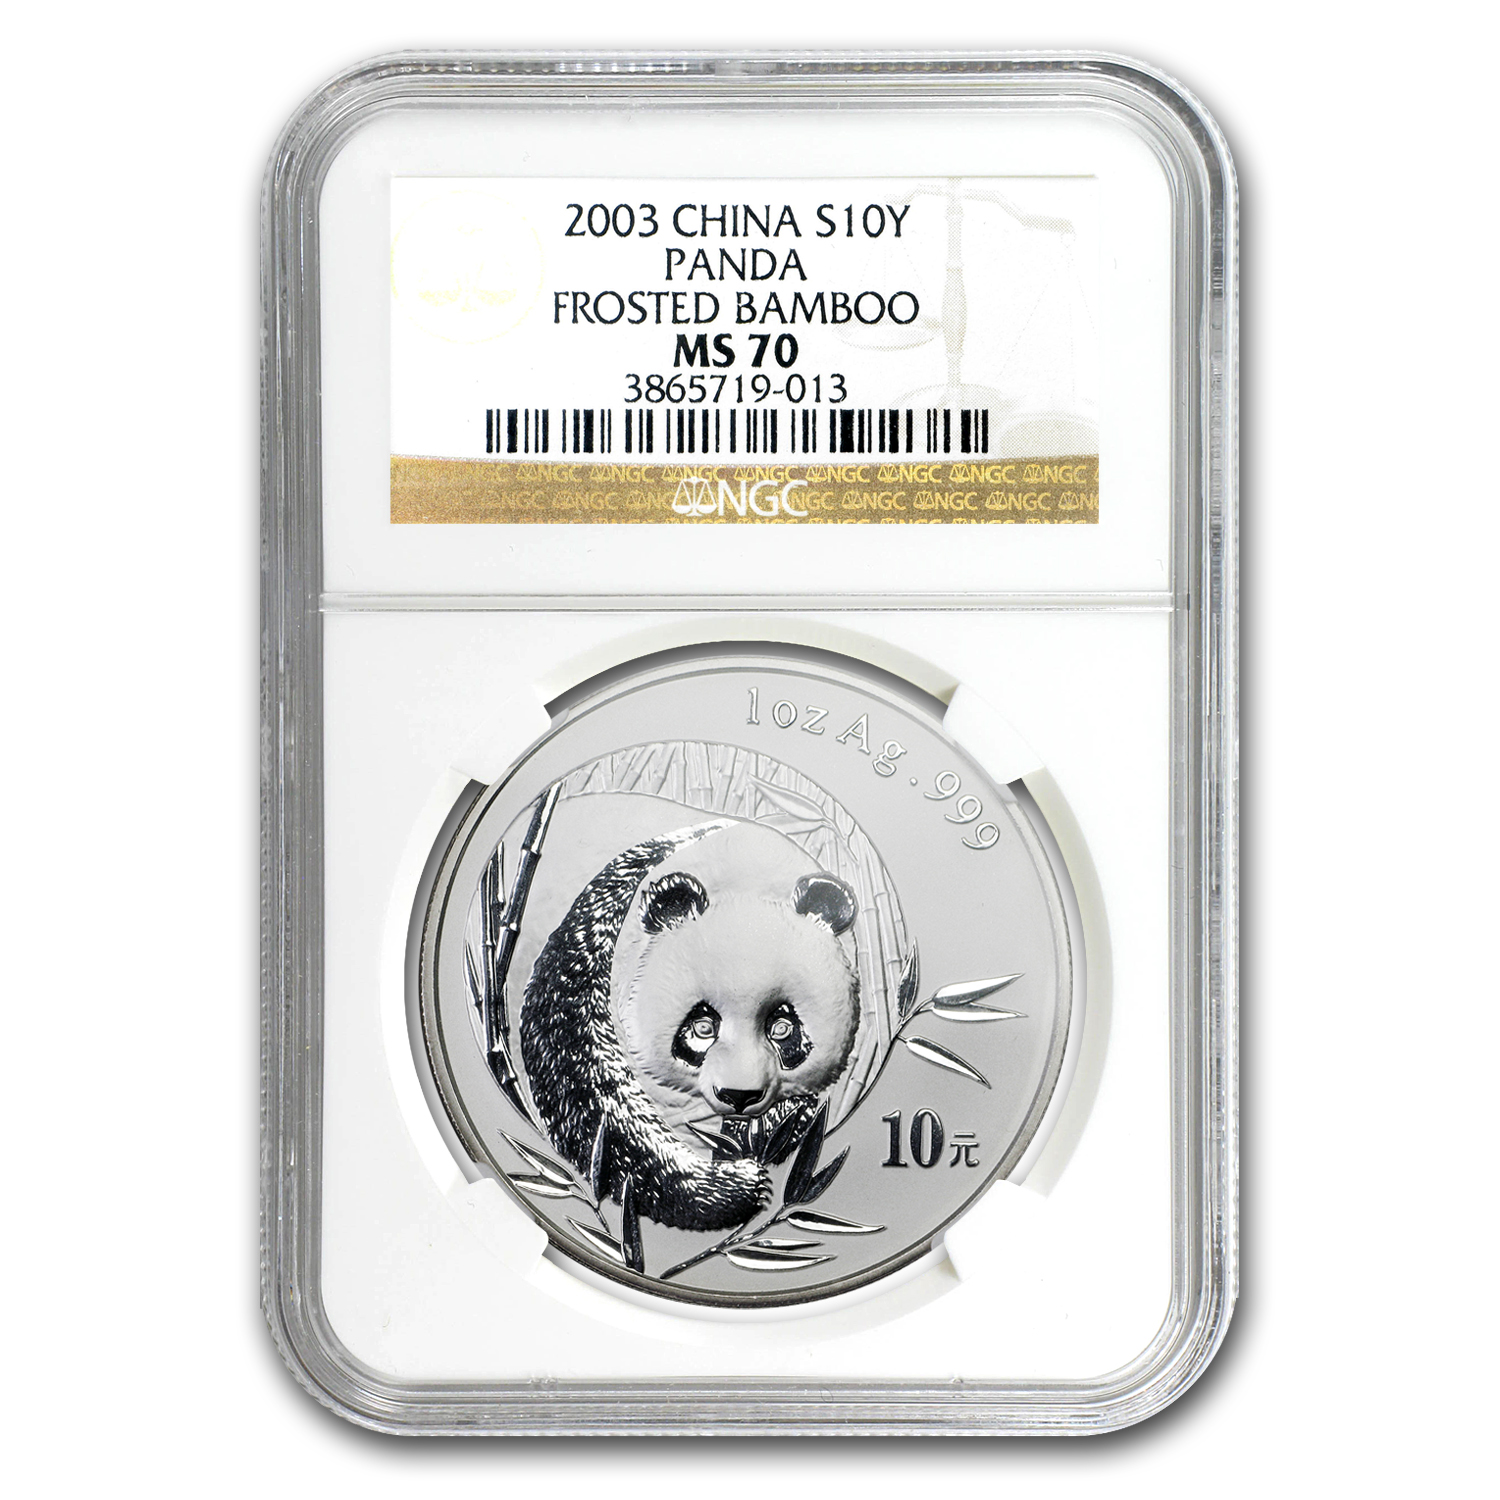 2003 China 1 oz Silver Panda MS-70 NGC